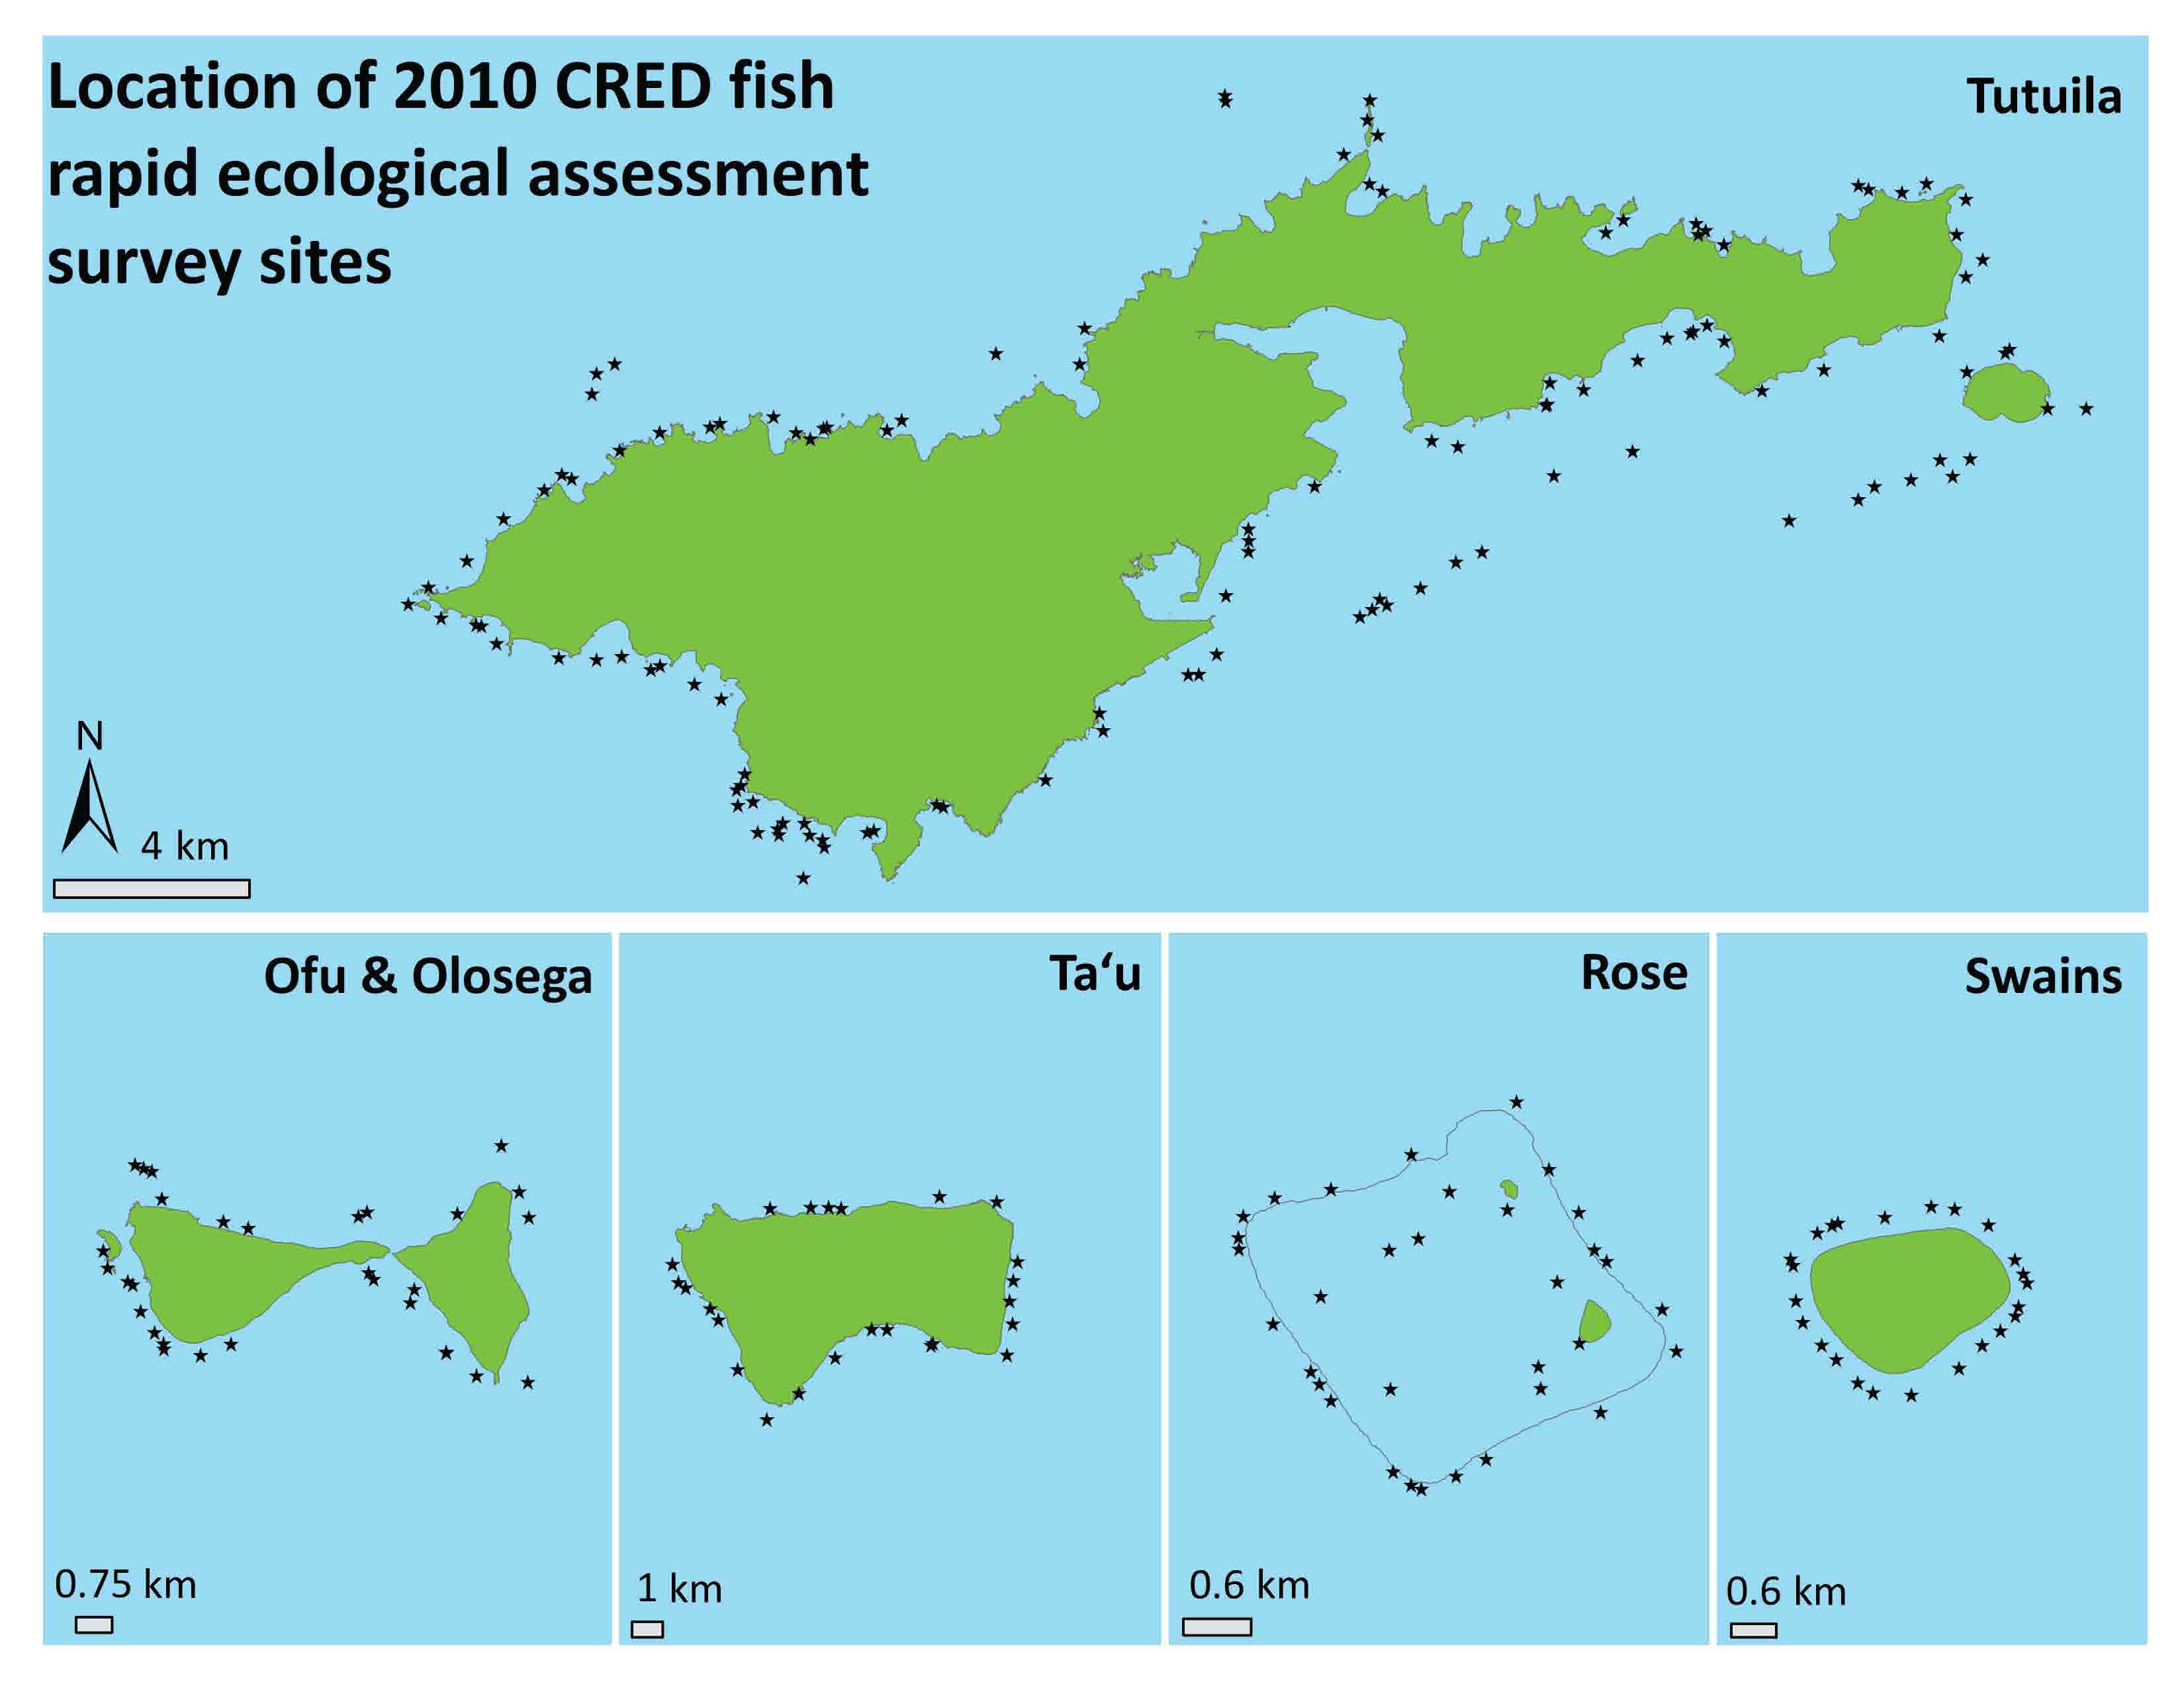 Sample Map Layer - Location of 2010 CRED fish rapid ecological assessment survey sites.